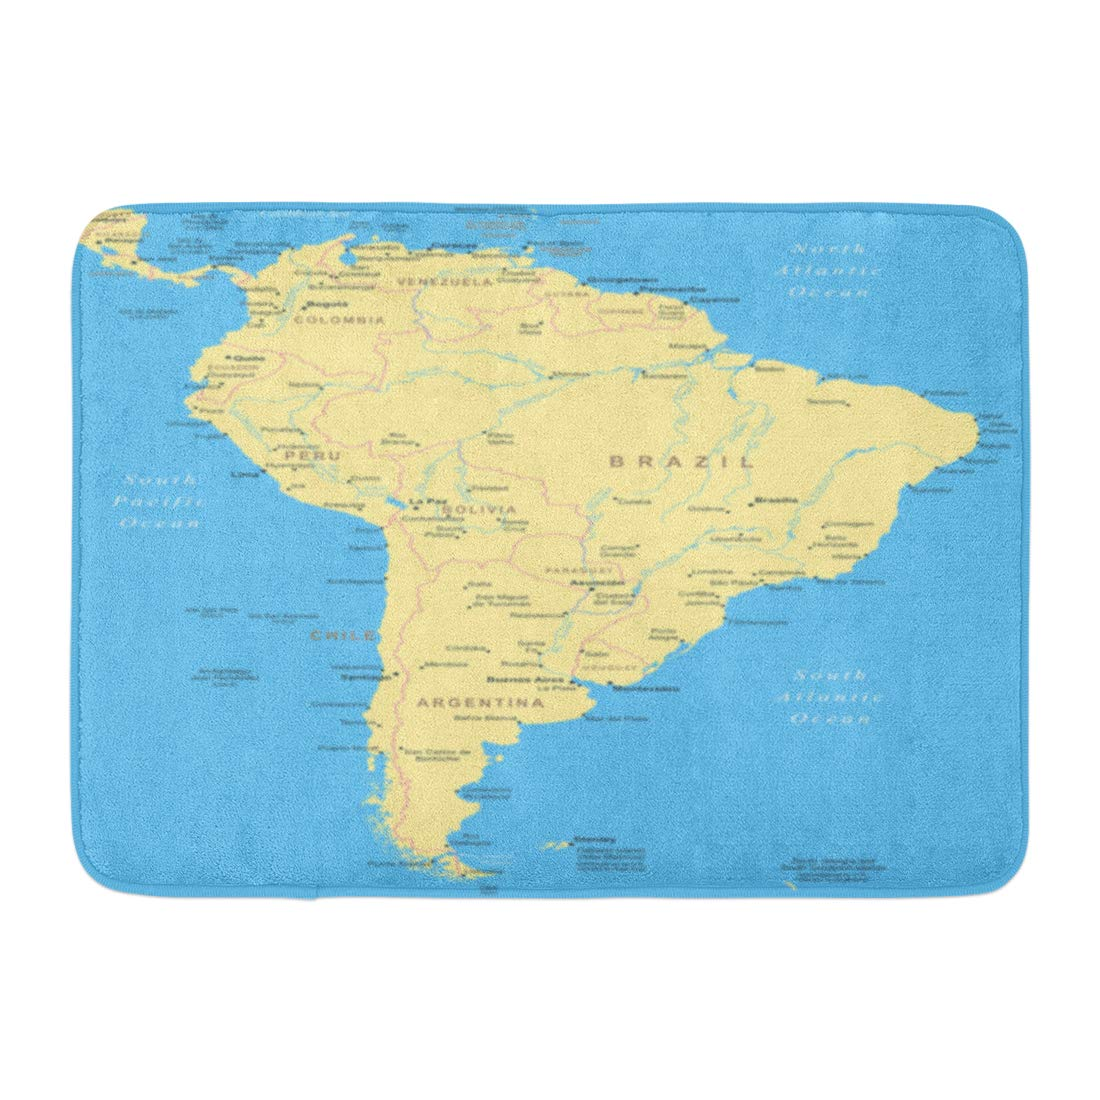 Aabagael Bath Mat Barbados Blue Central South America Map Highly Detailed Yellow Argentina Bolivia Bathroom Decor Rug 16'' x 24''